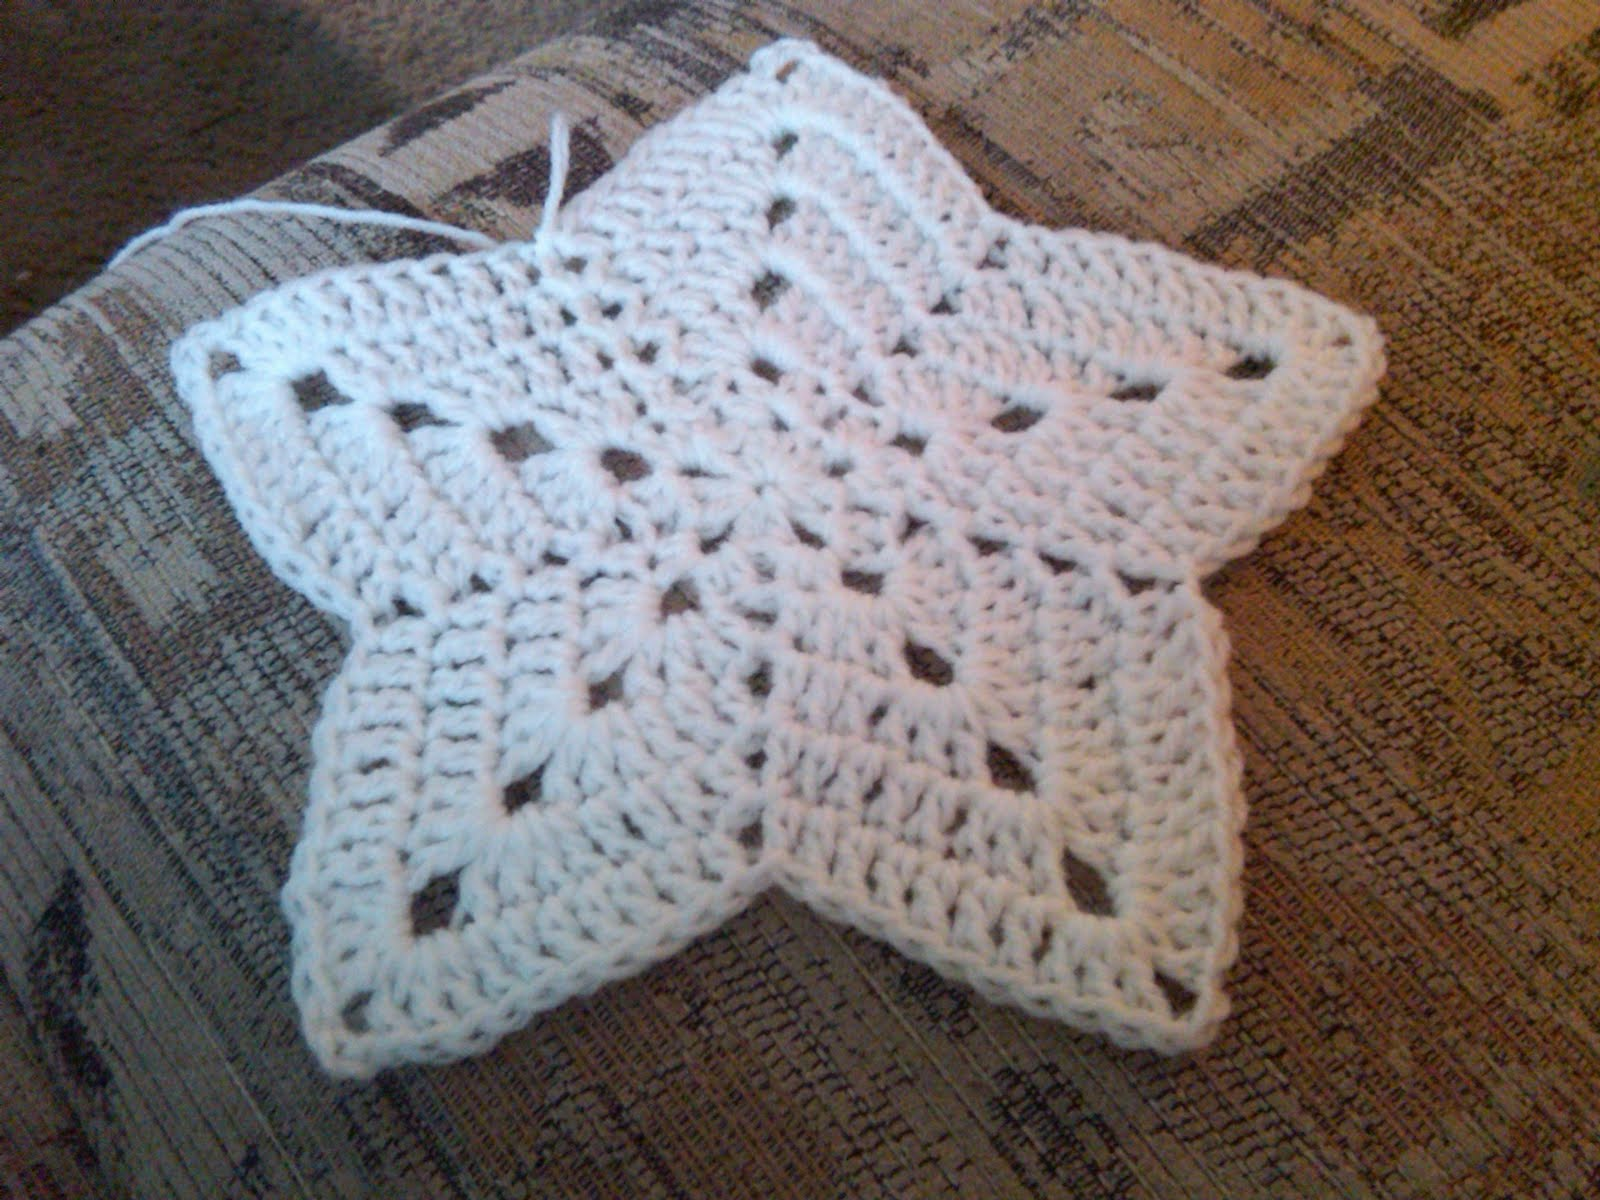 Crocheting Pronunciation : Crocheted 5 Point Star Pattern Crochet Patterns Caroldoey